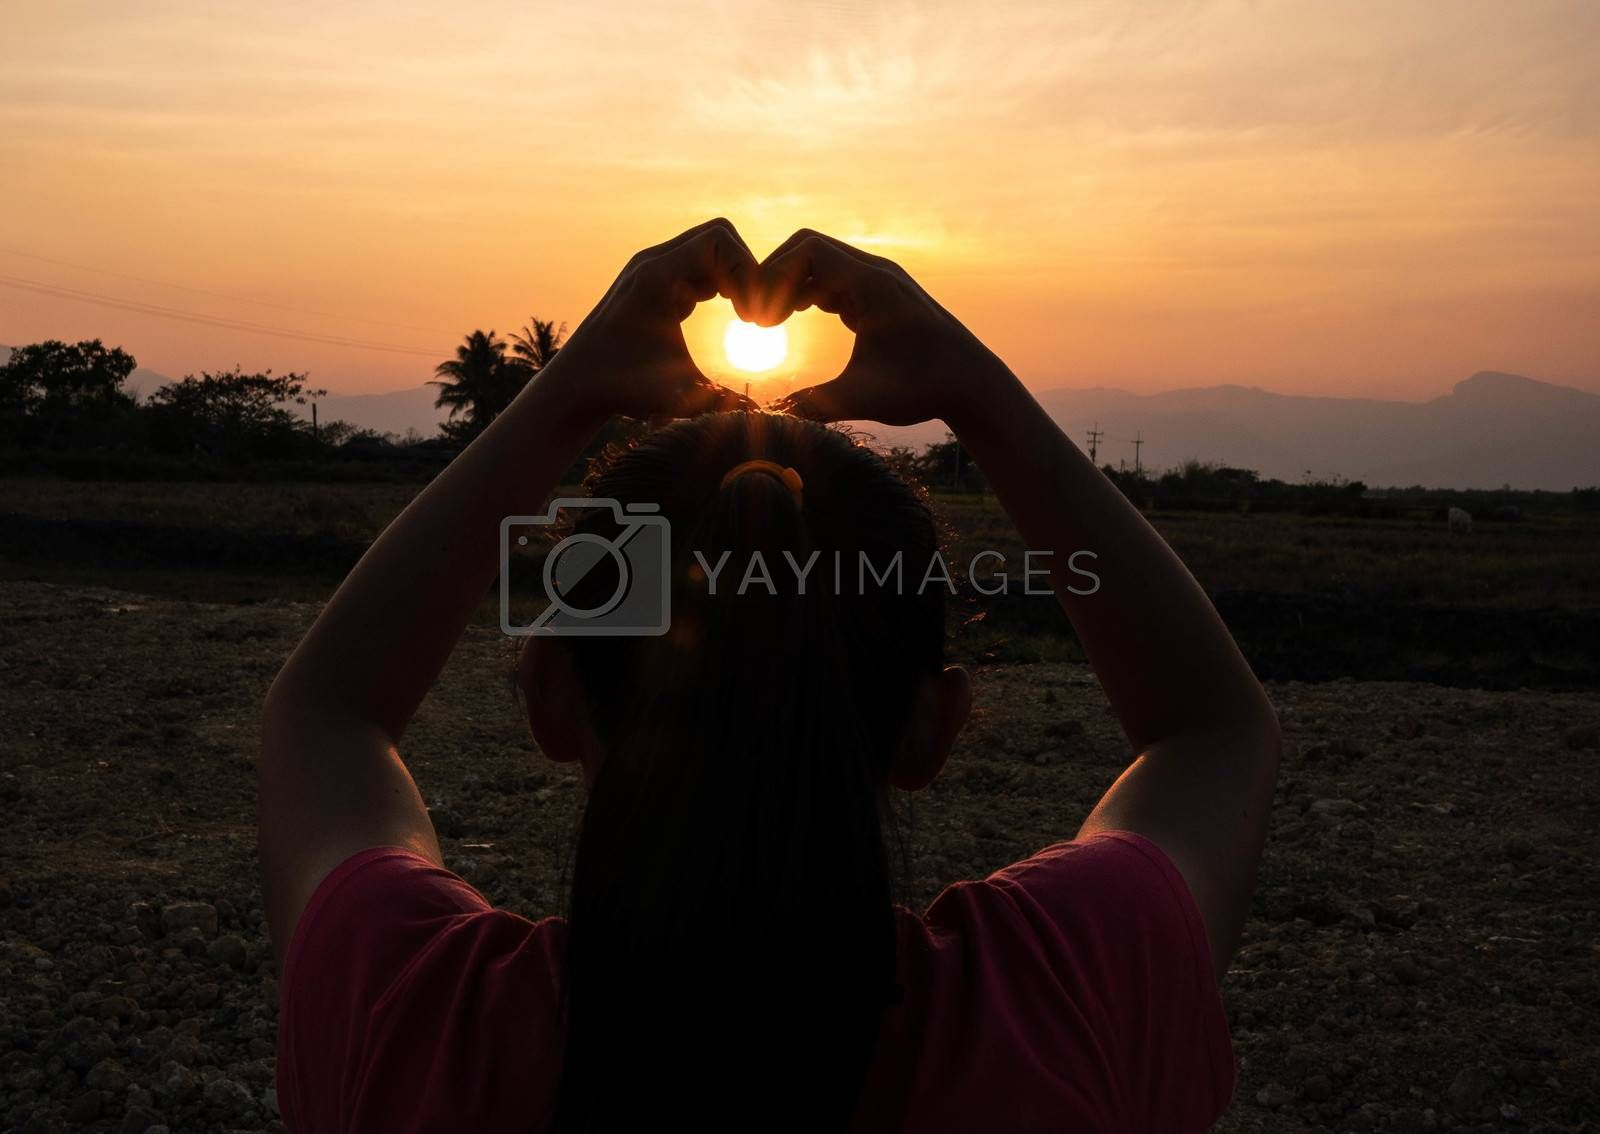 Asian young woman making heart shape by hands on the sunset by the field.